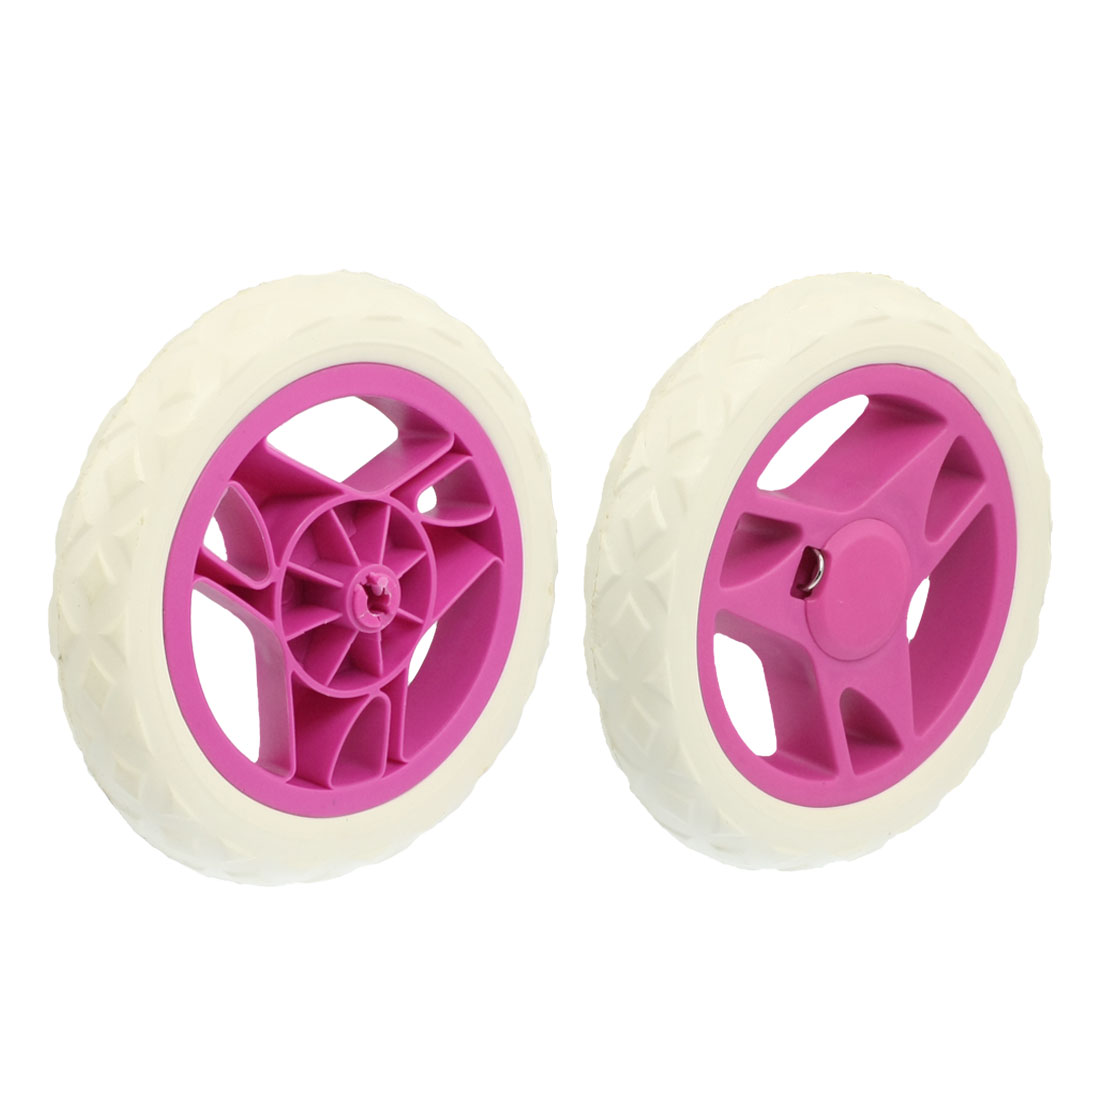 2 Pcs Interchangeable Shopping Trolley Travelling Cart Wheels White Fushia